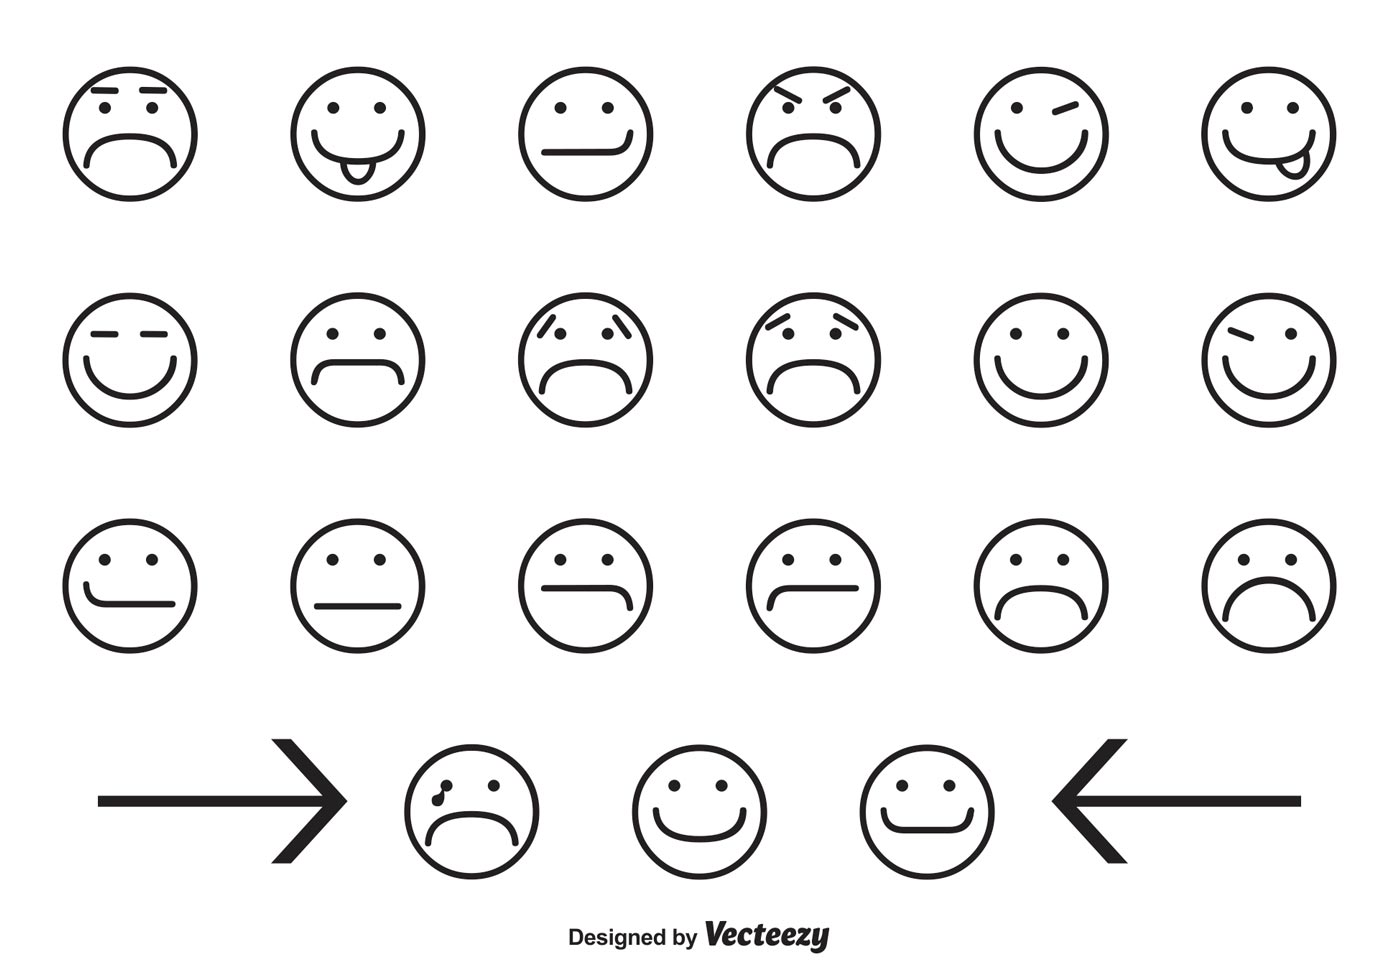 Assorted Smiley Face Icons